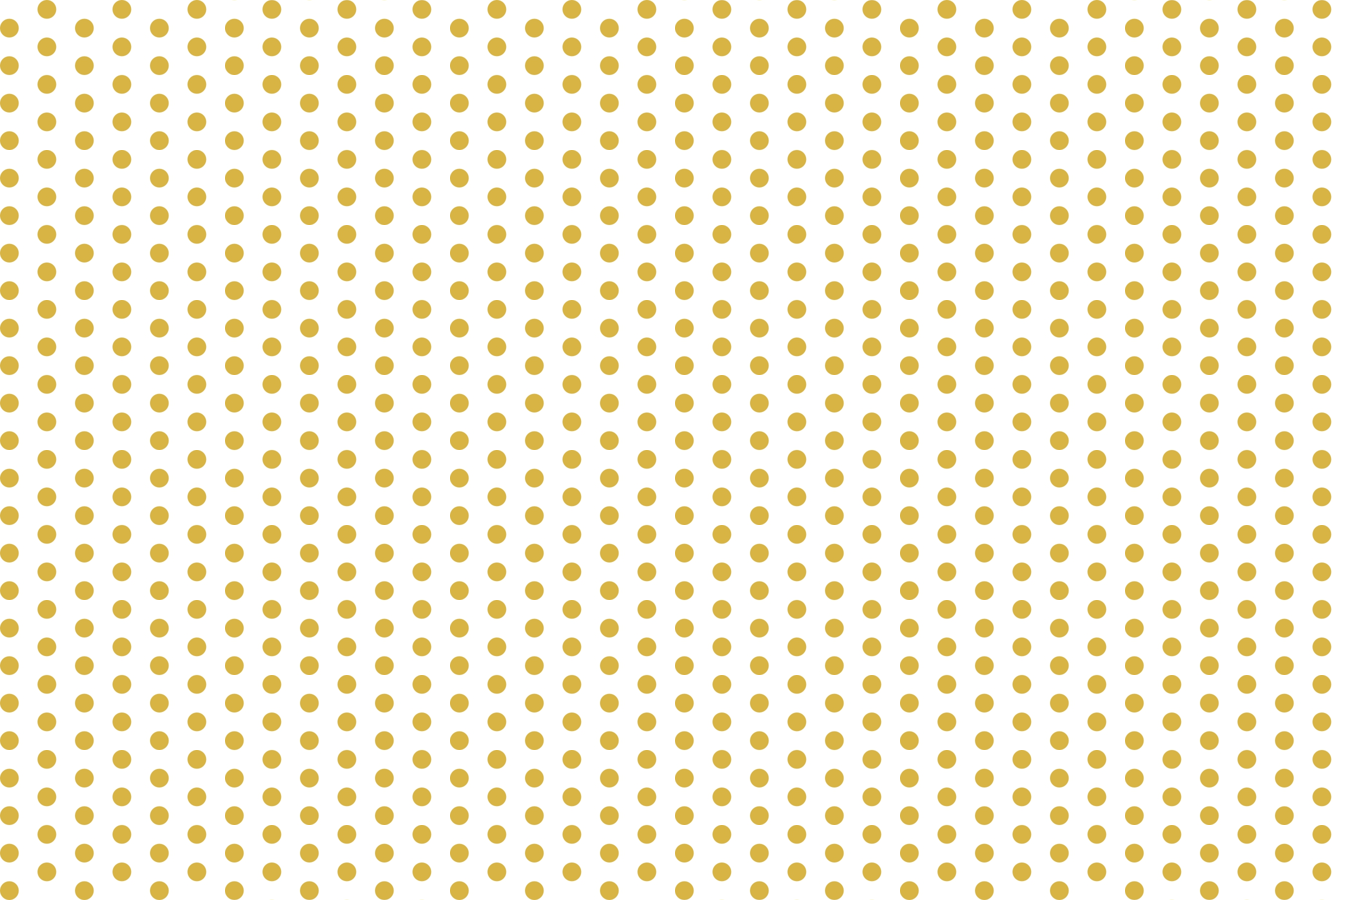 Gold Polka Dots Png, png collections at sccpre.cat.